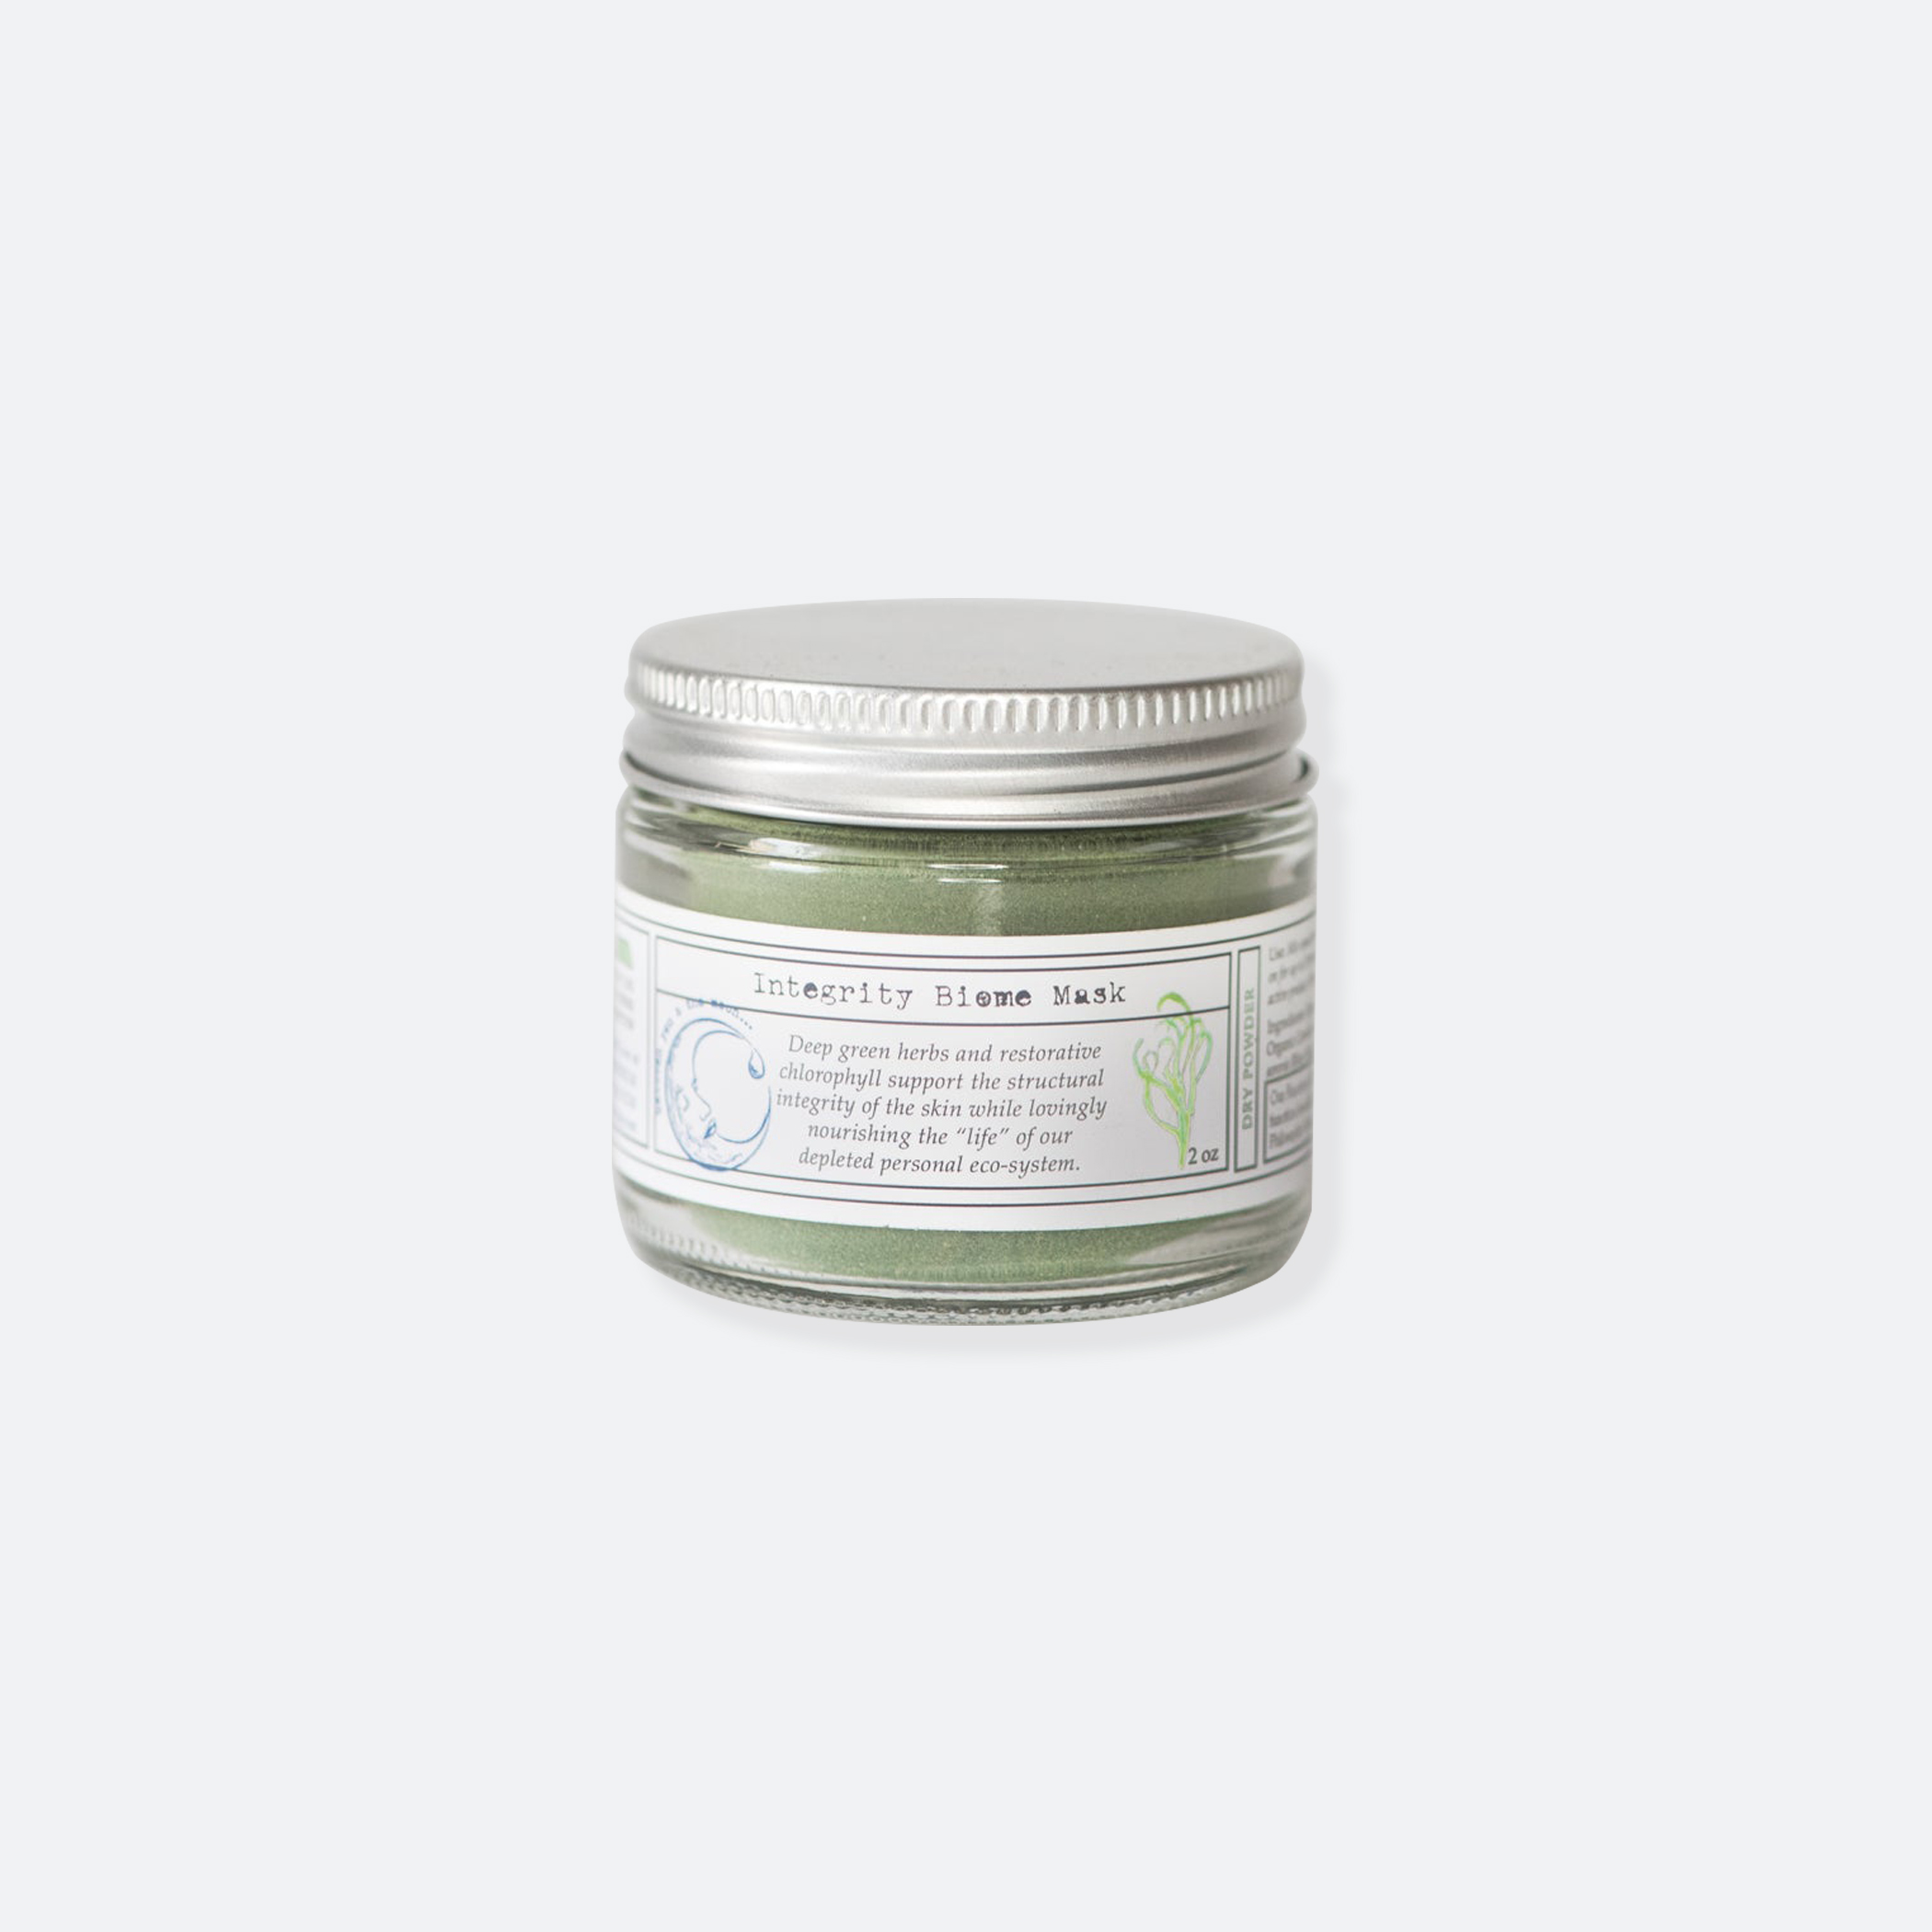 OhMart Between You & the Moon – Integrity Biome Mask 60ml 1